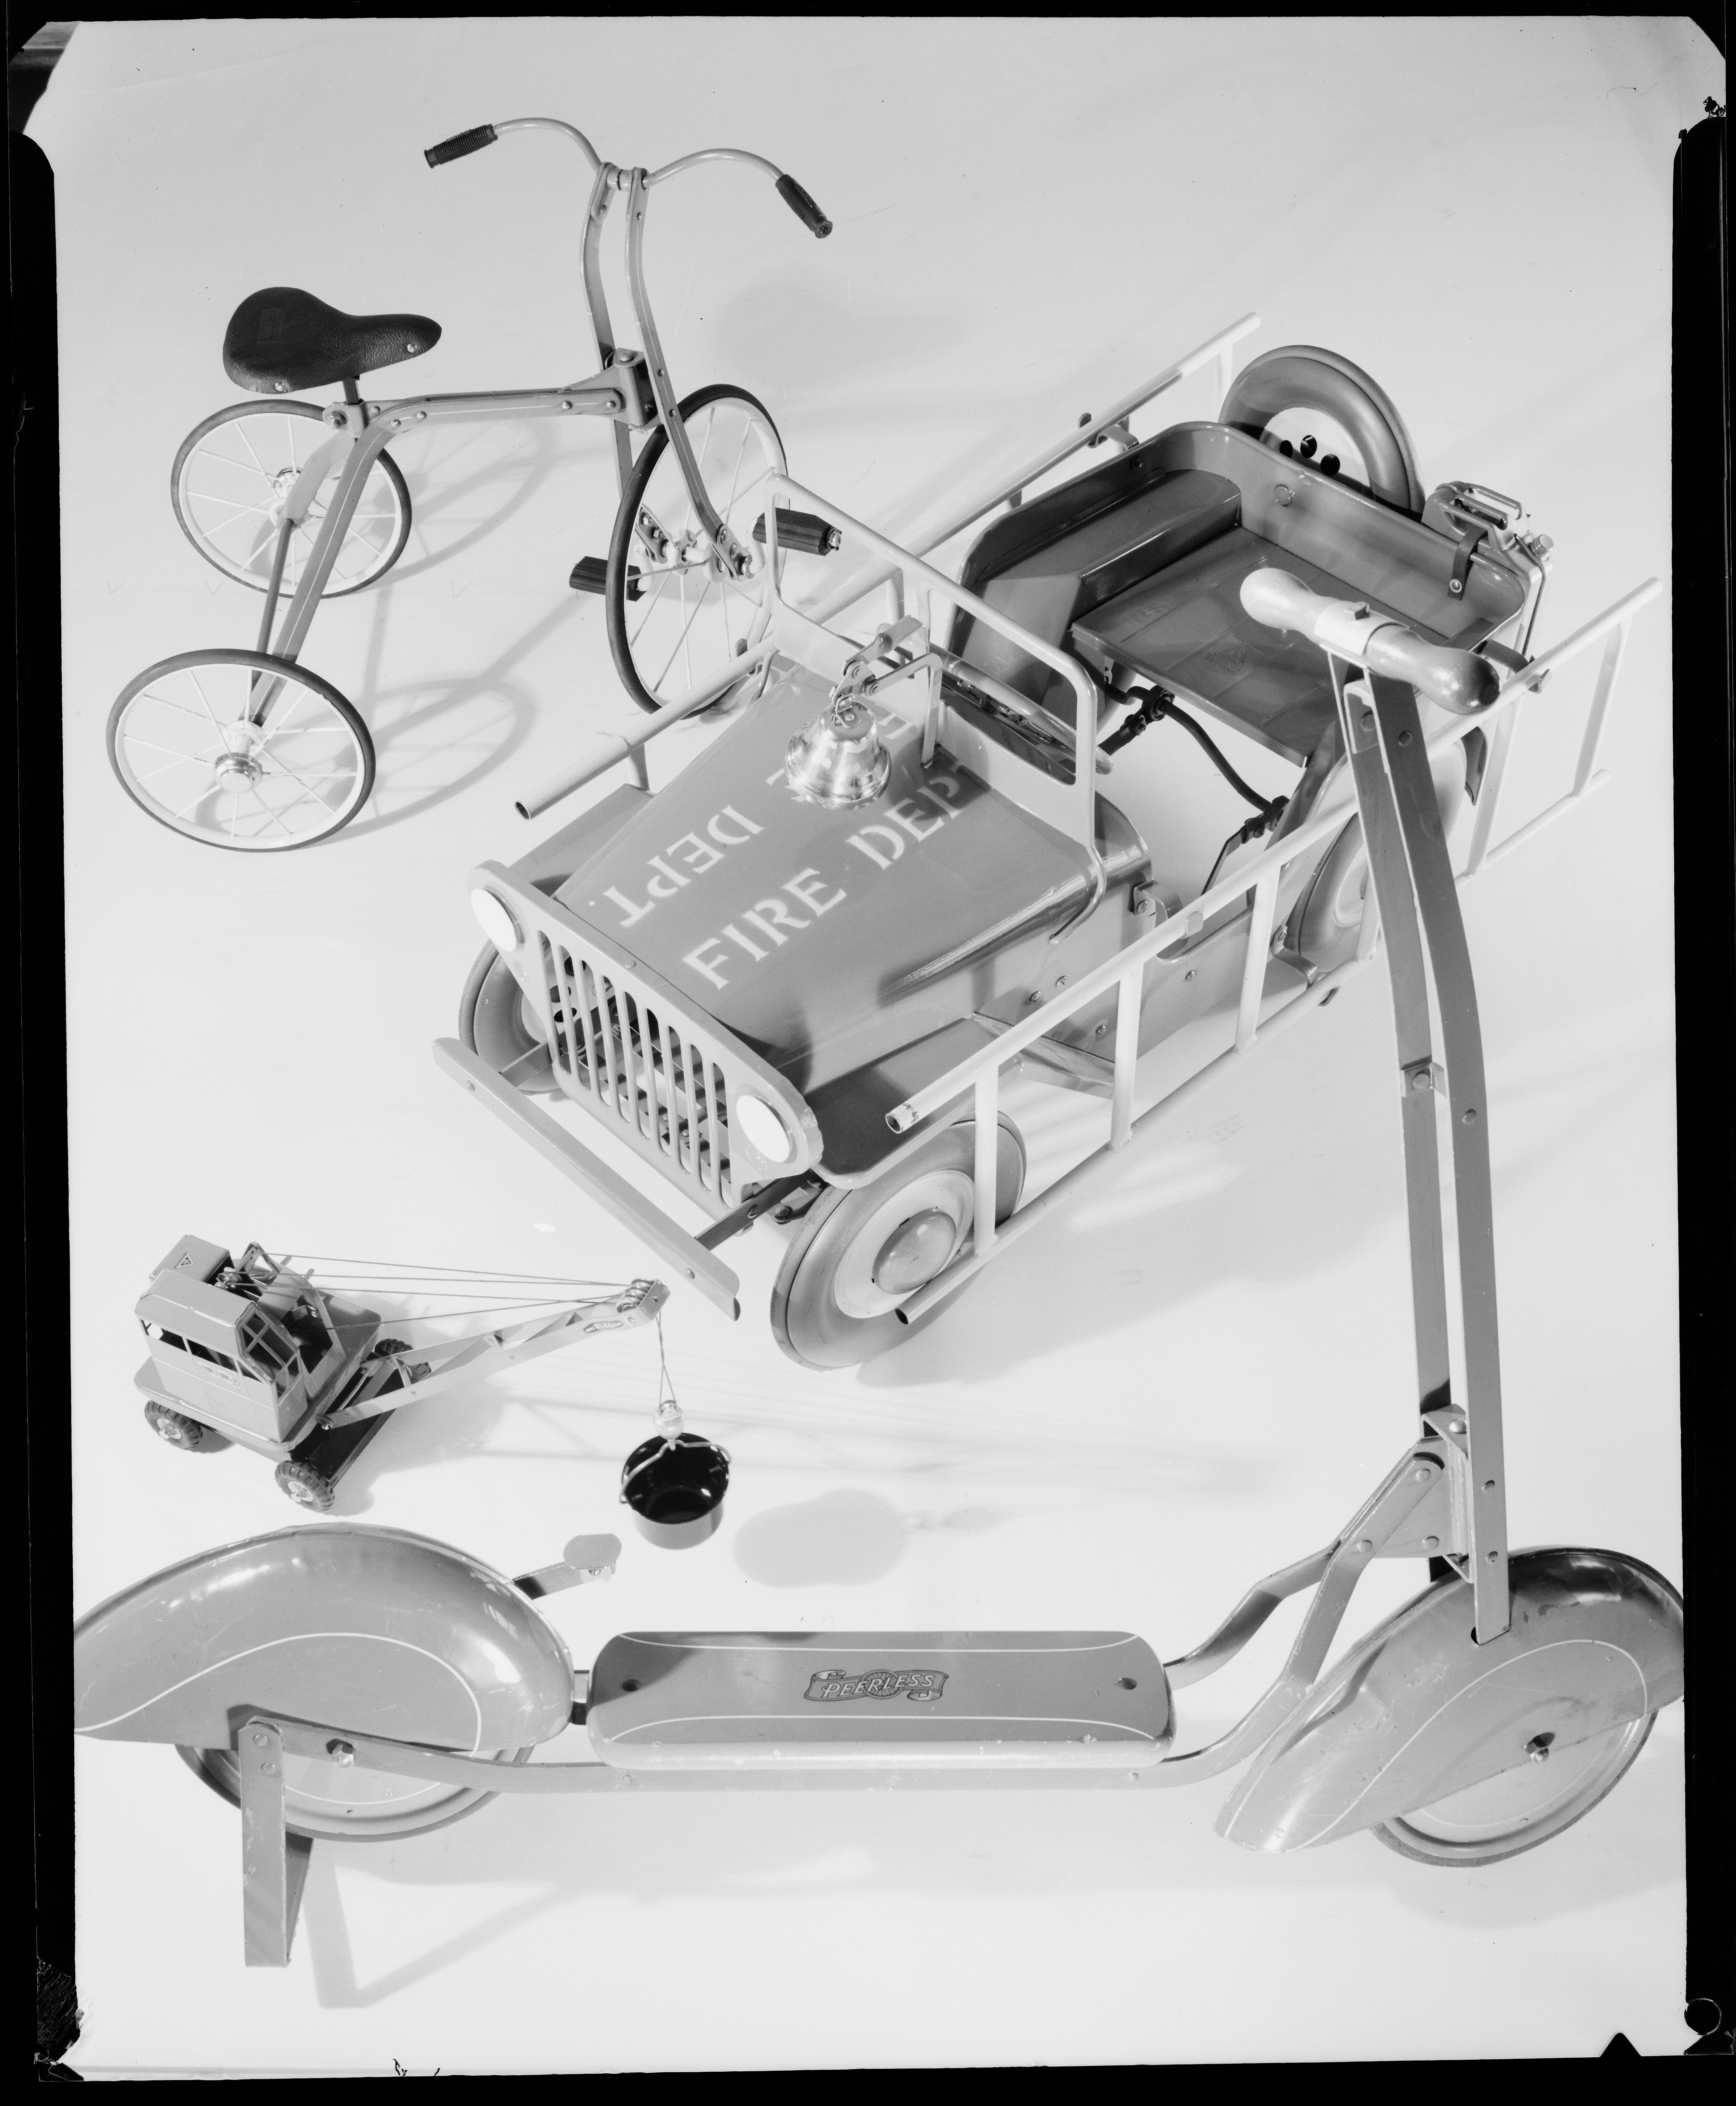 Xmas (Christmas) Toy Arrangement, ca. 1953, photographed by Max Dupain